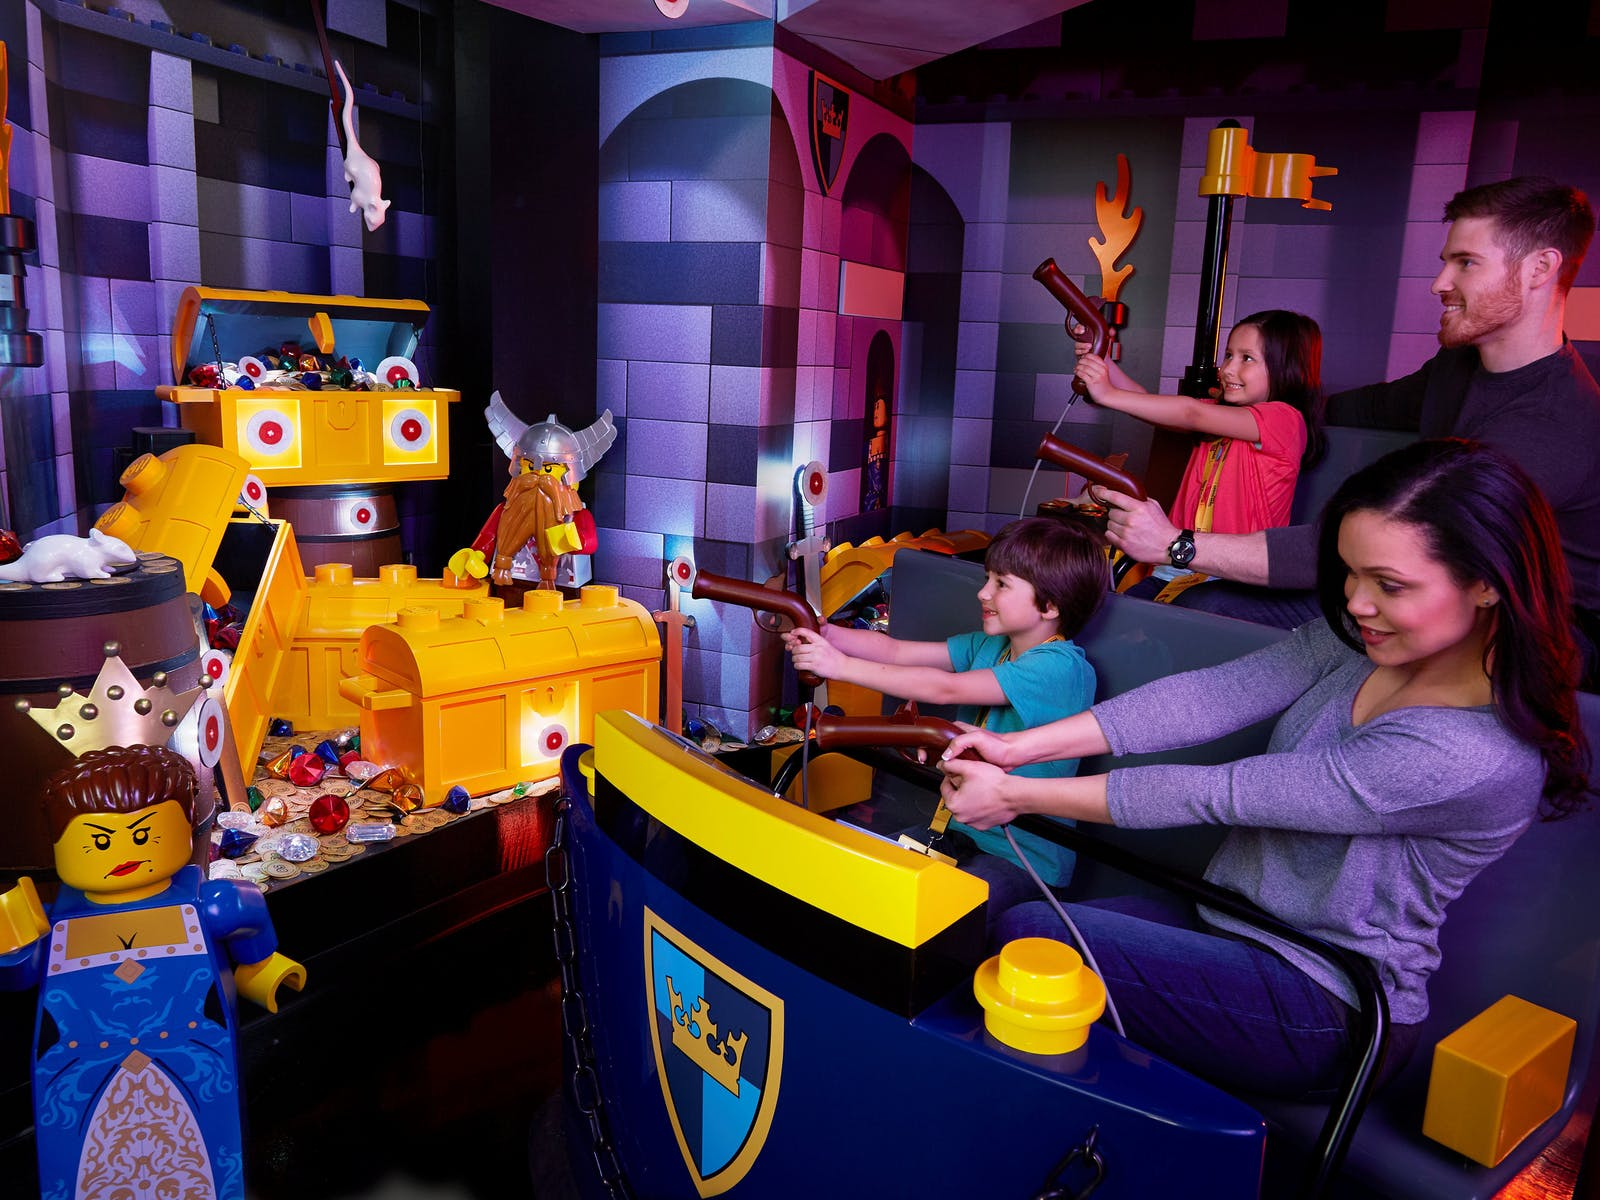 Family activities victoria australia the captured princess needs your help hop aboard the kingdom quest ride to rescue her negle Gallery